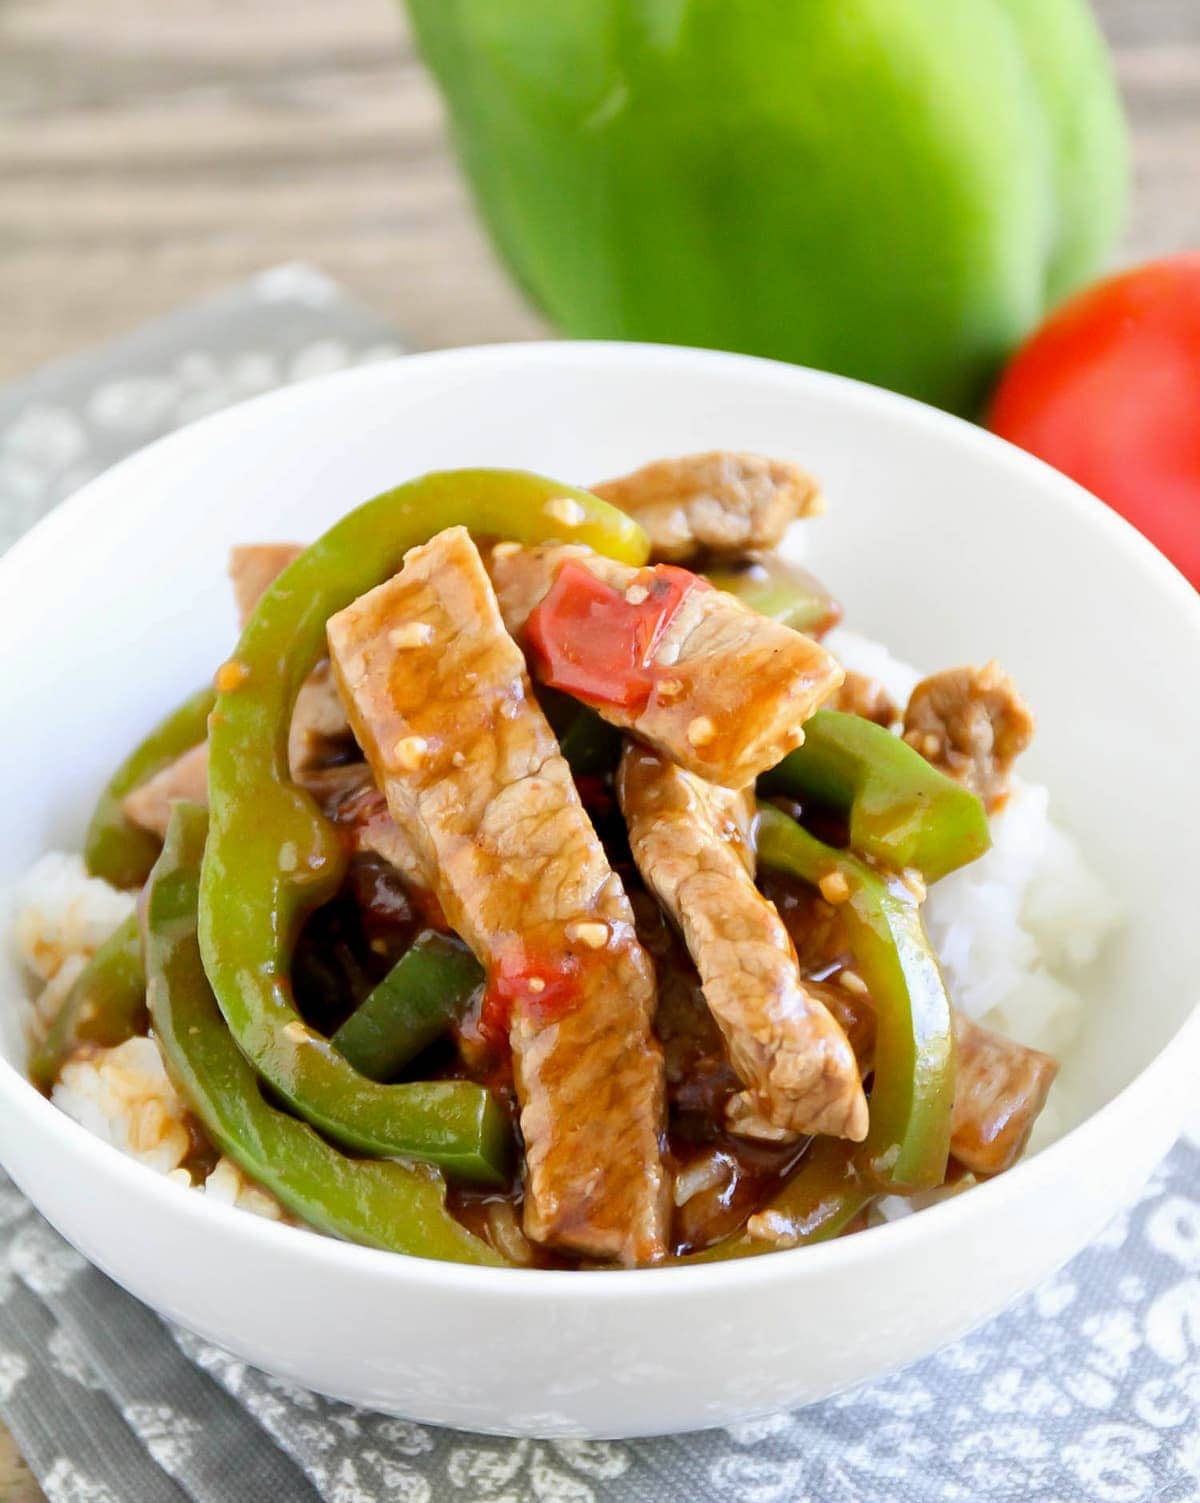 Chinese pepper steak with vegetables served over white rice